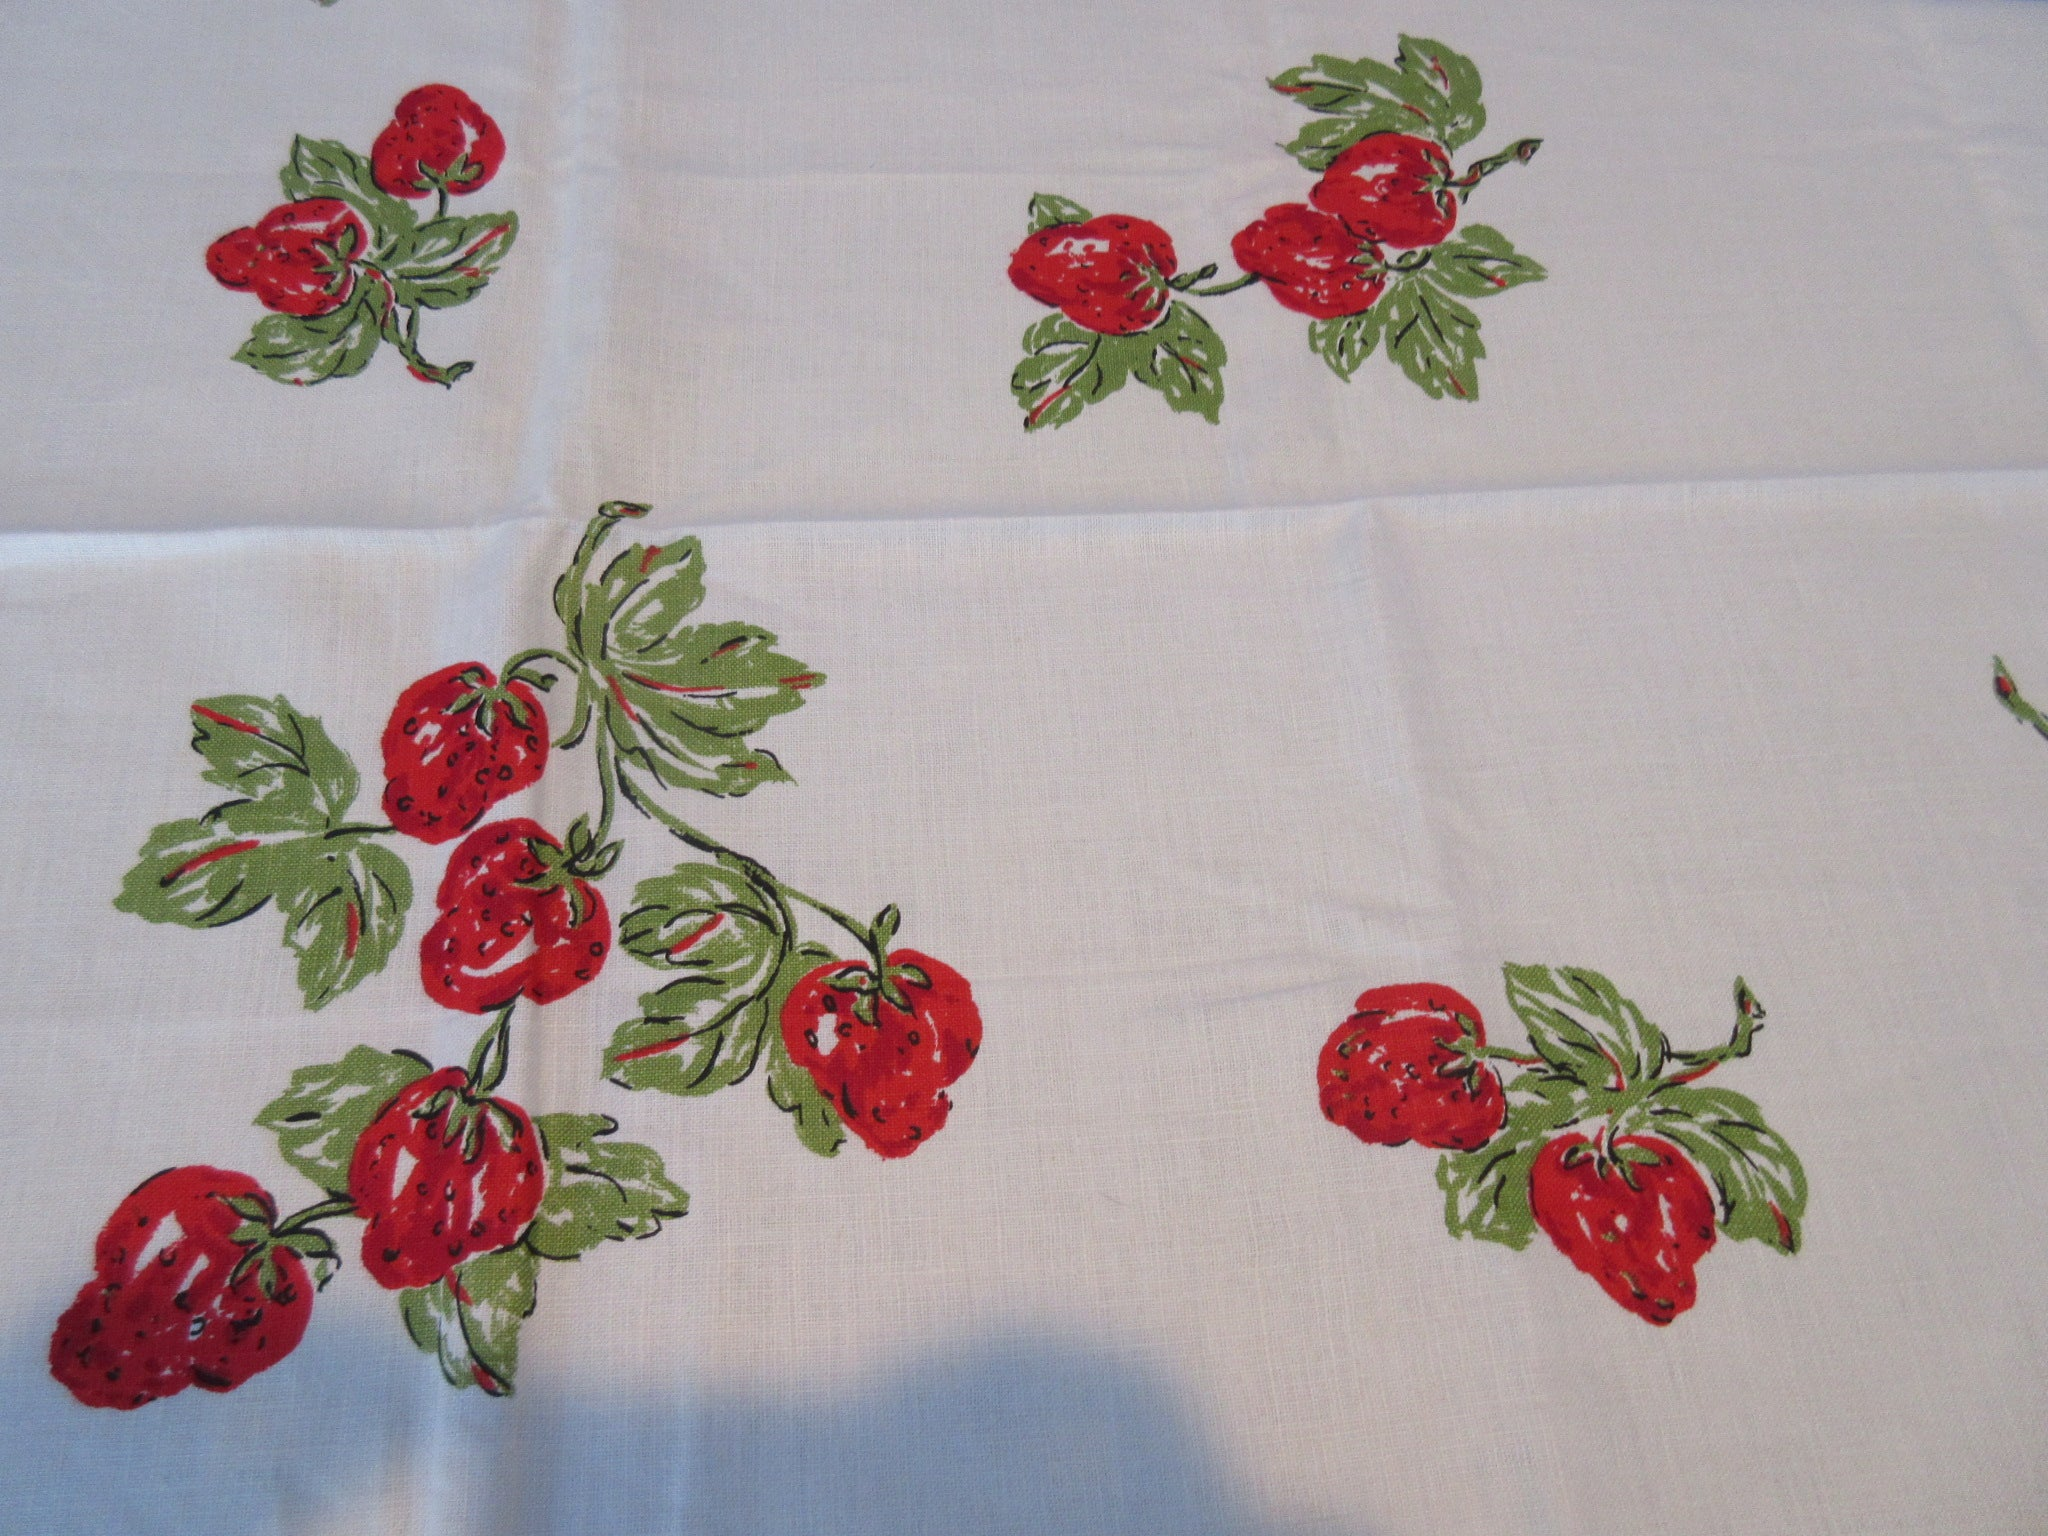 Yummy Red Green Strawberries MWT Linen Fruit Vintage Printed Tablecloth (69 X 51)